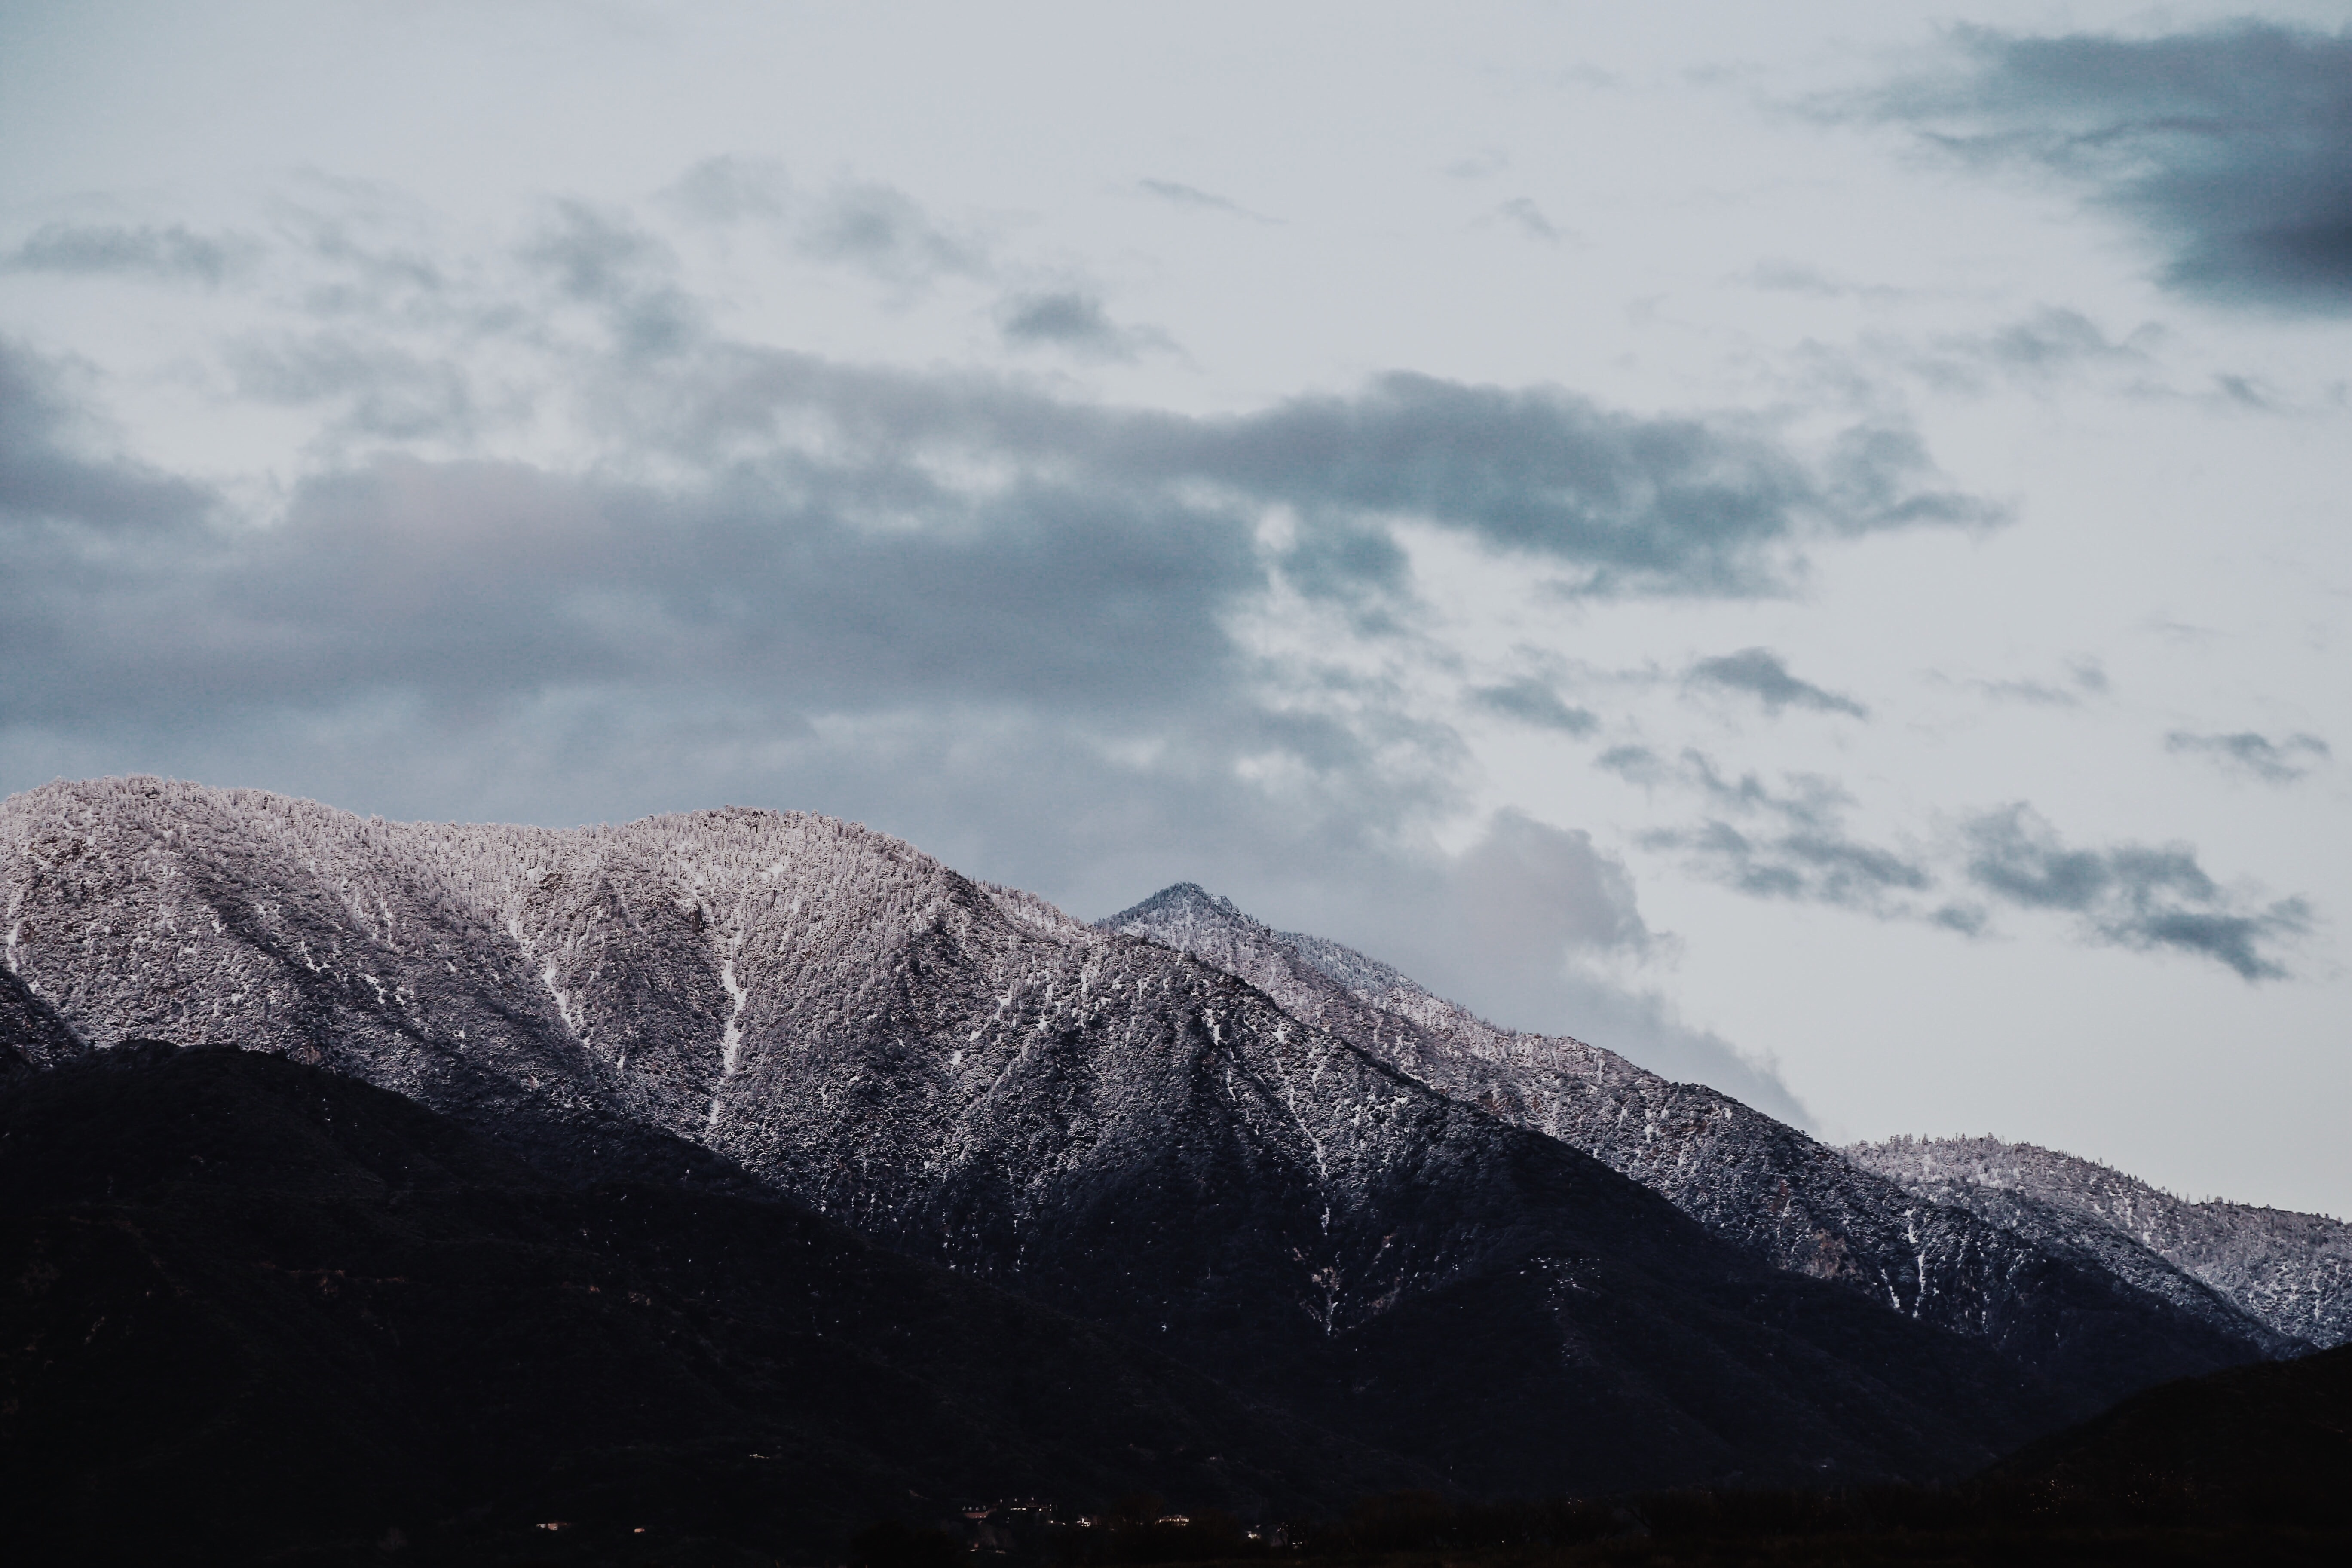 Light illuminates the snow on the mountain's peaks on an overcast day